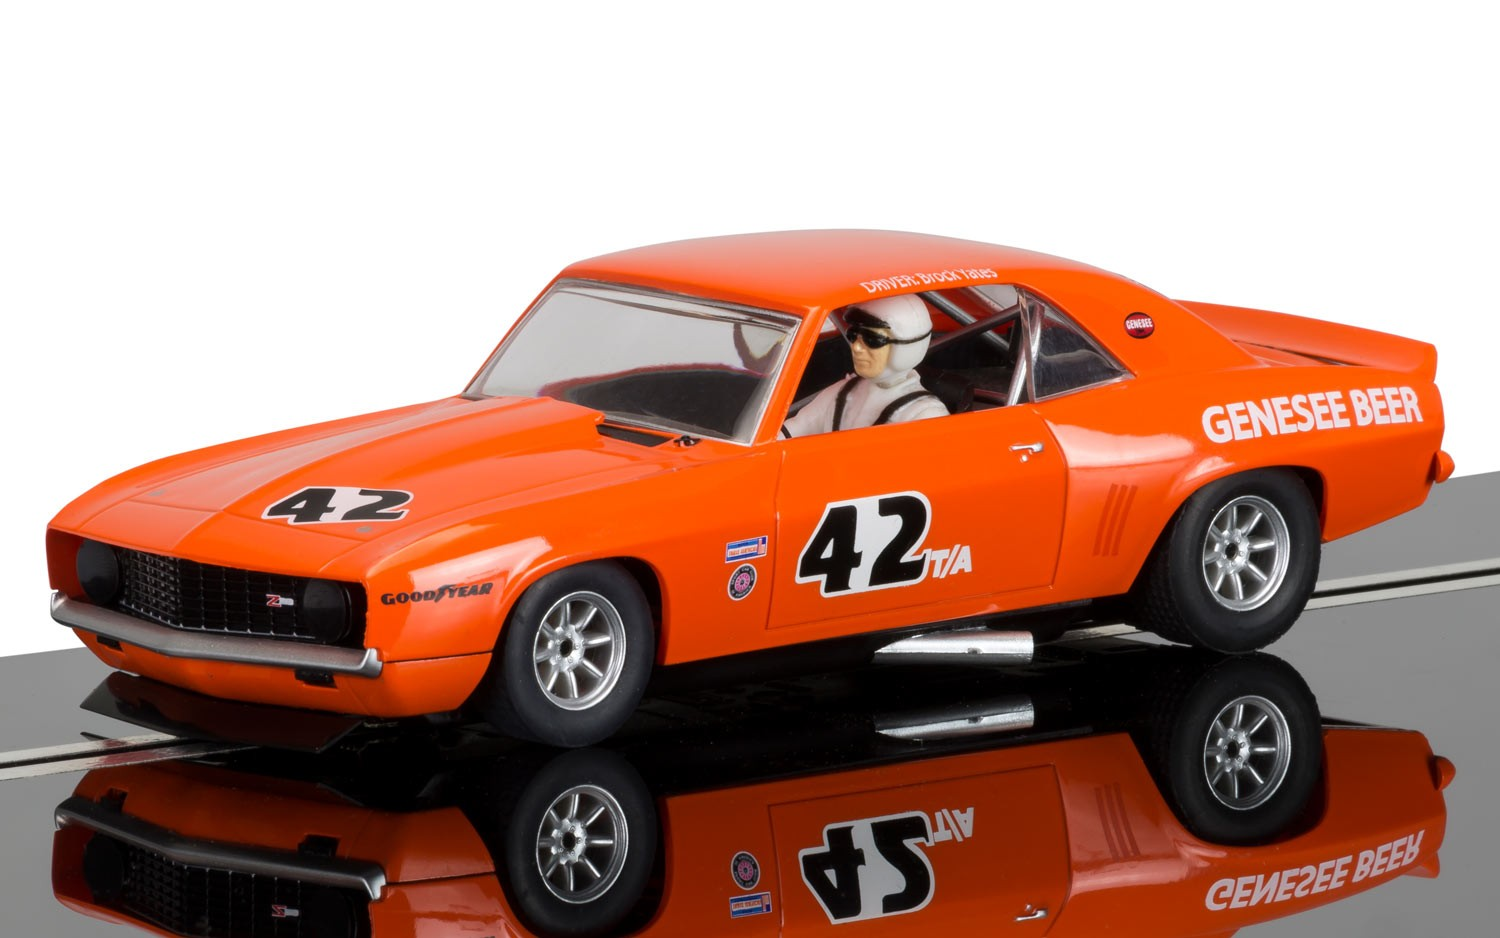 Chevrolet Camaro 1971 Trans Am #42 1/32 Slot Car